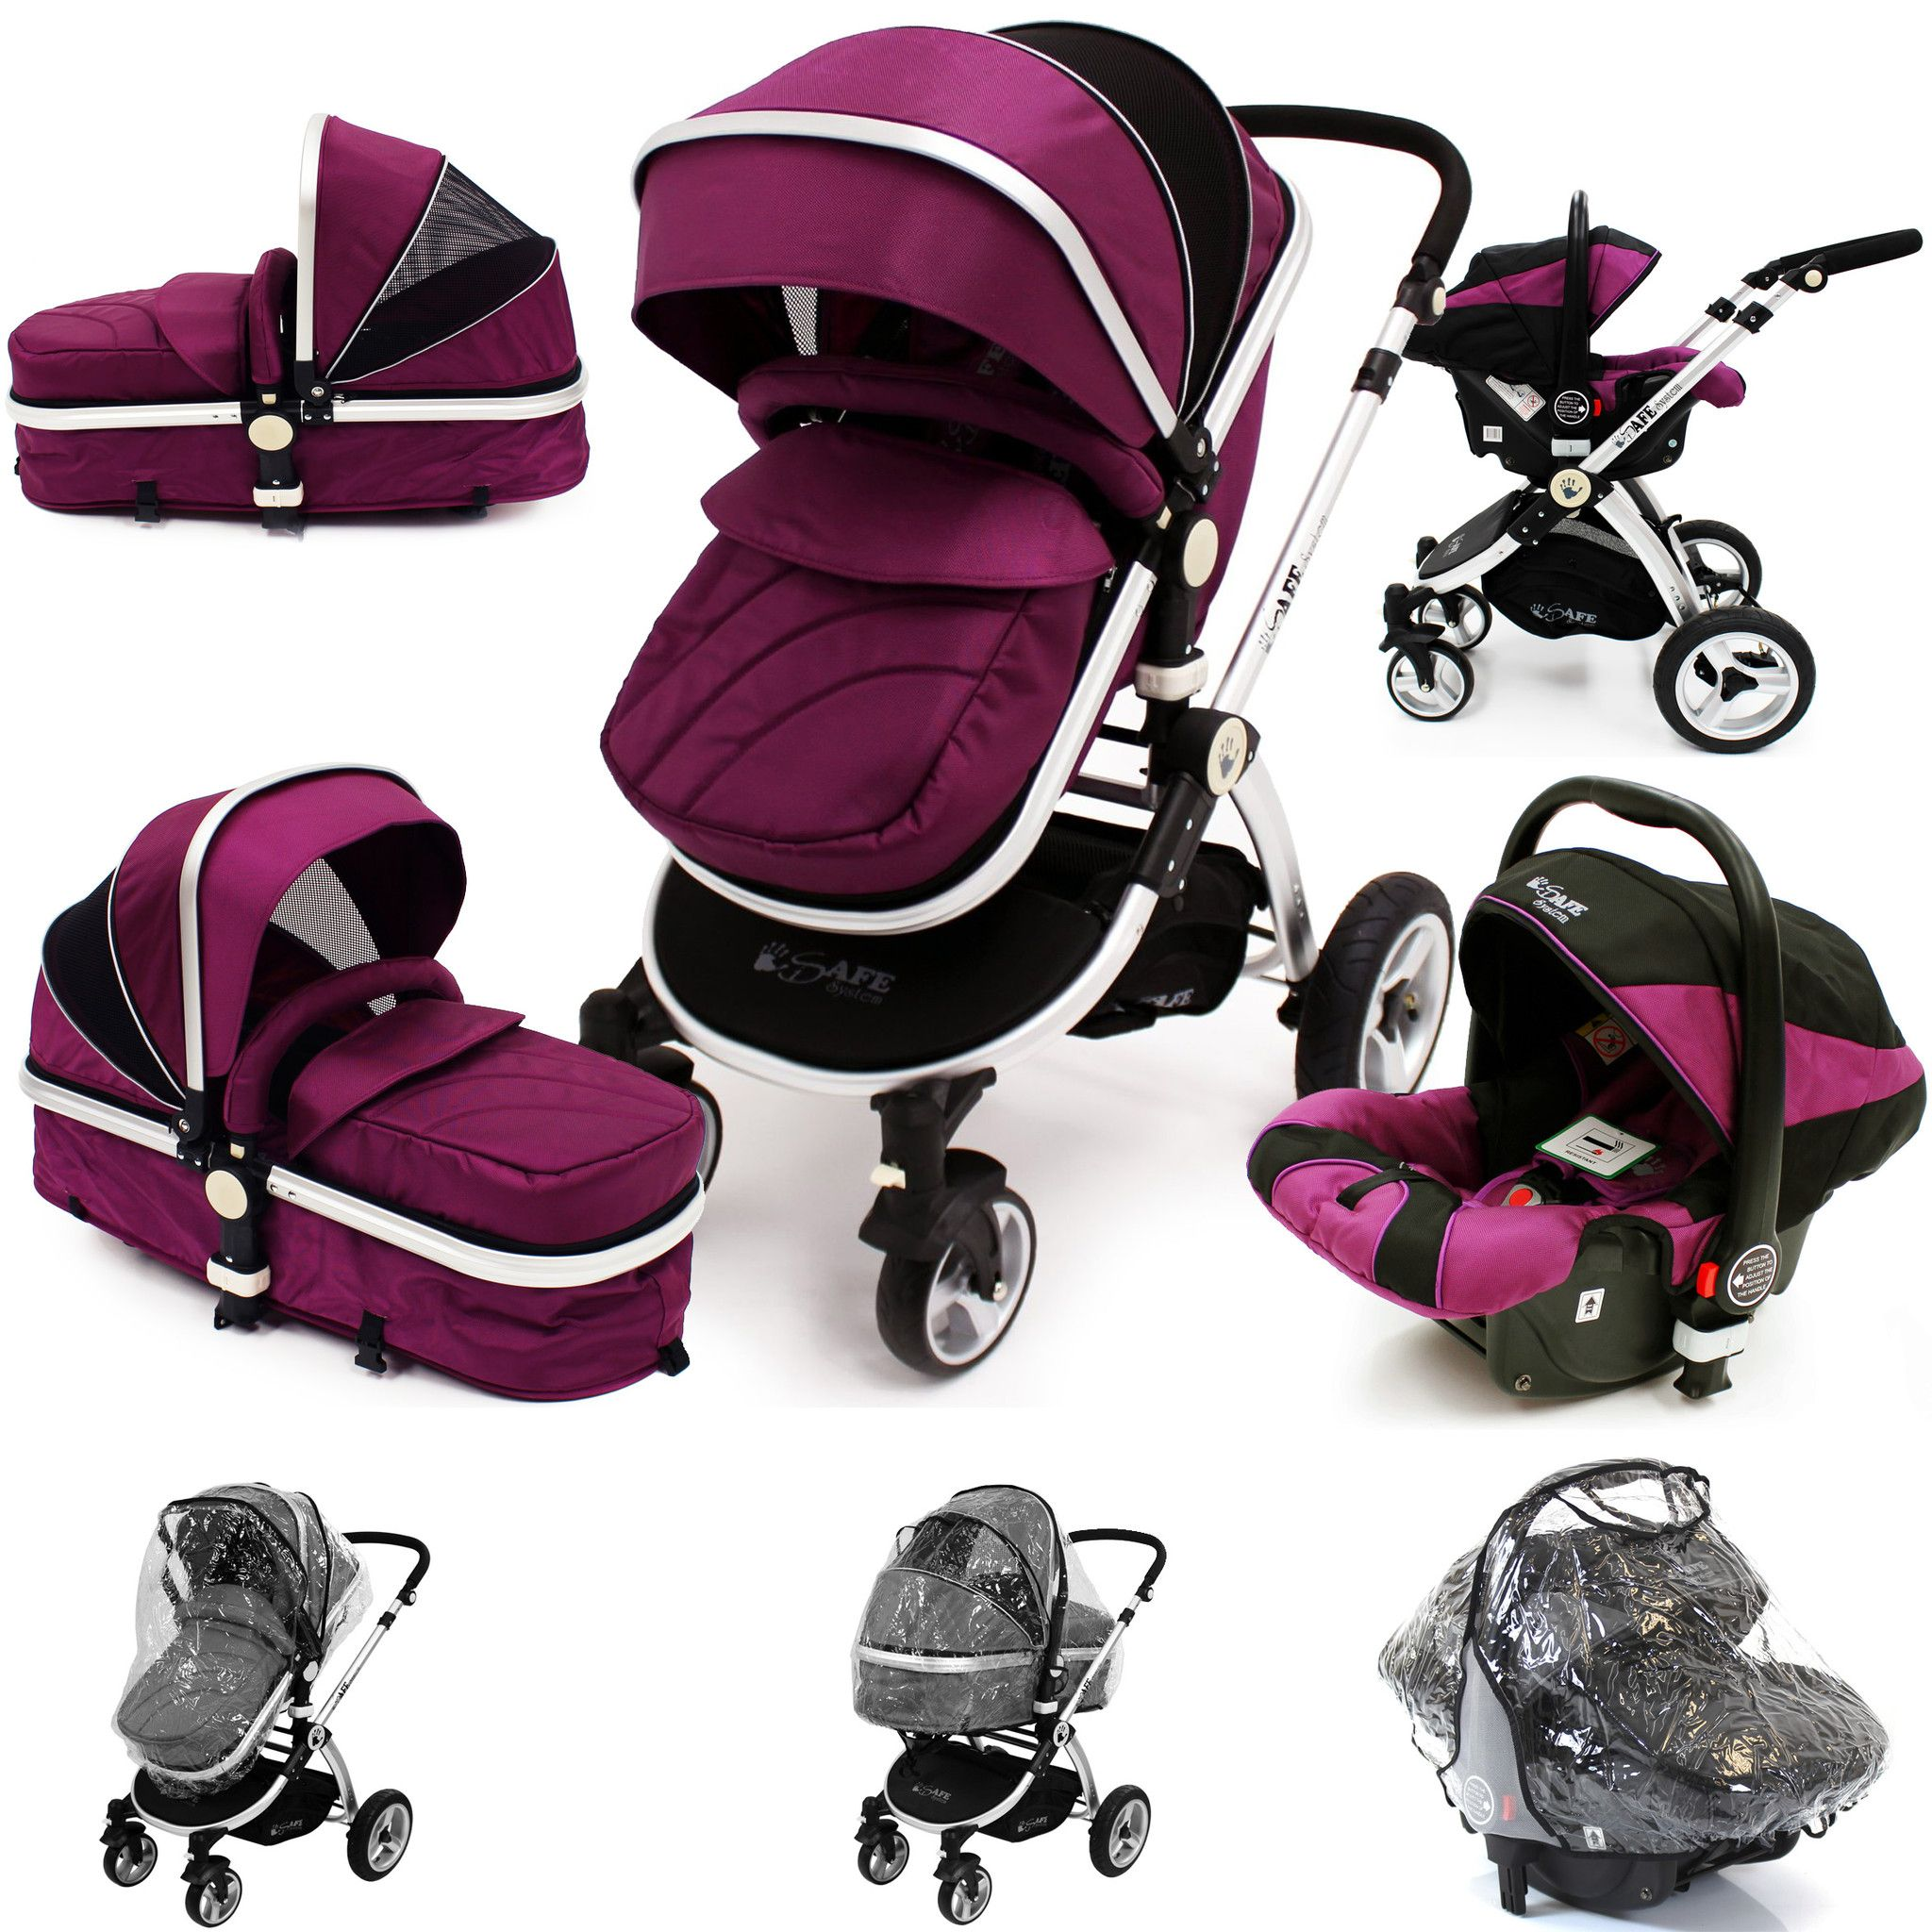 iSafe 3 in 1 Pram Travel System Plum (Purple) With